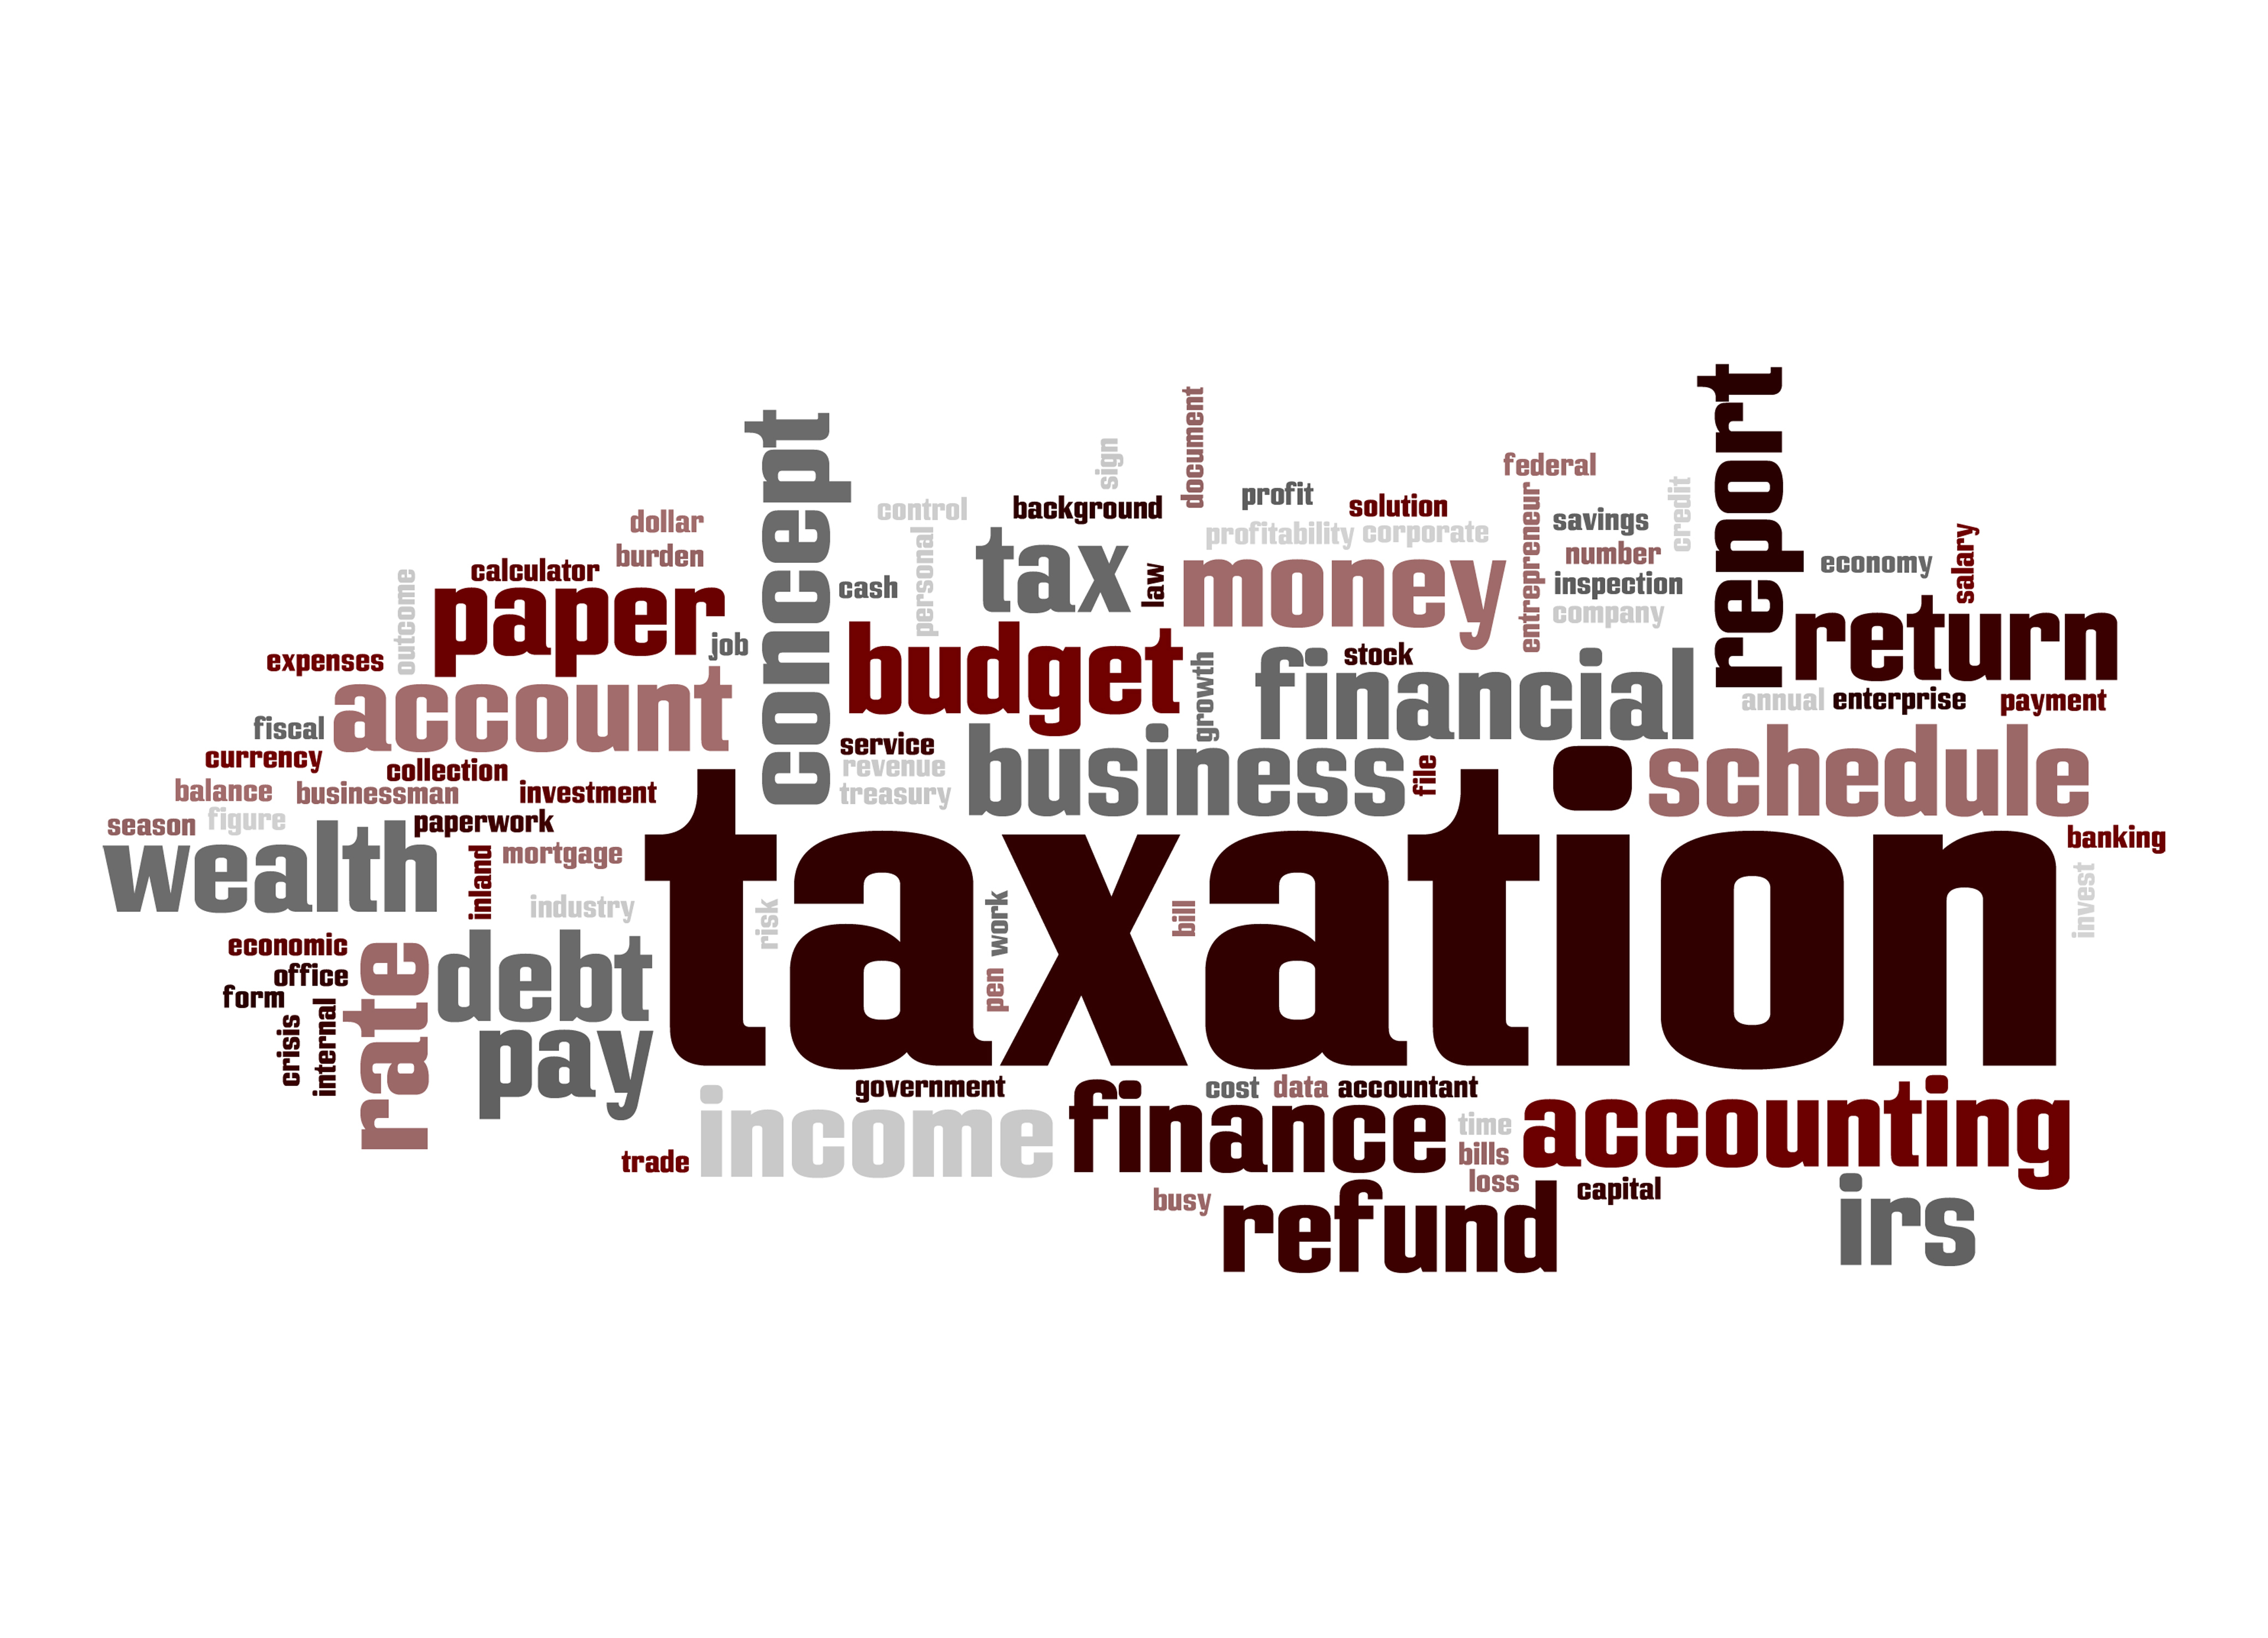 Tax administration: Action aid, Oxfam call for govt accountability